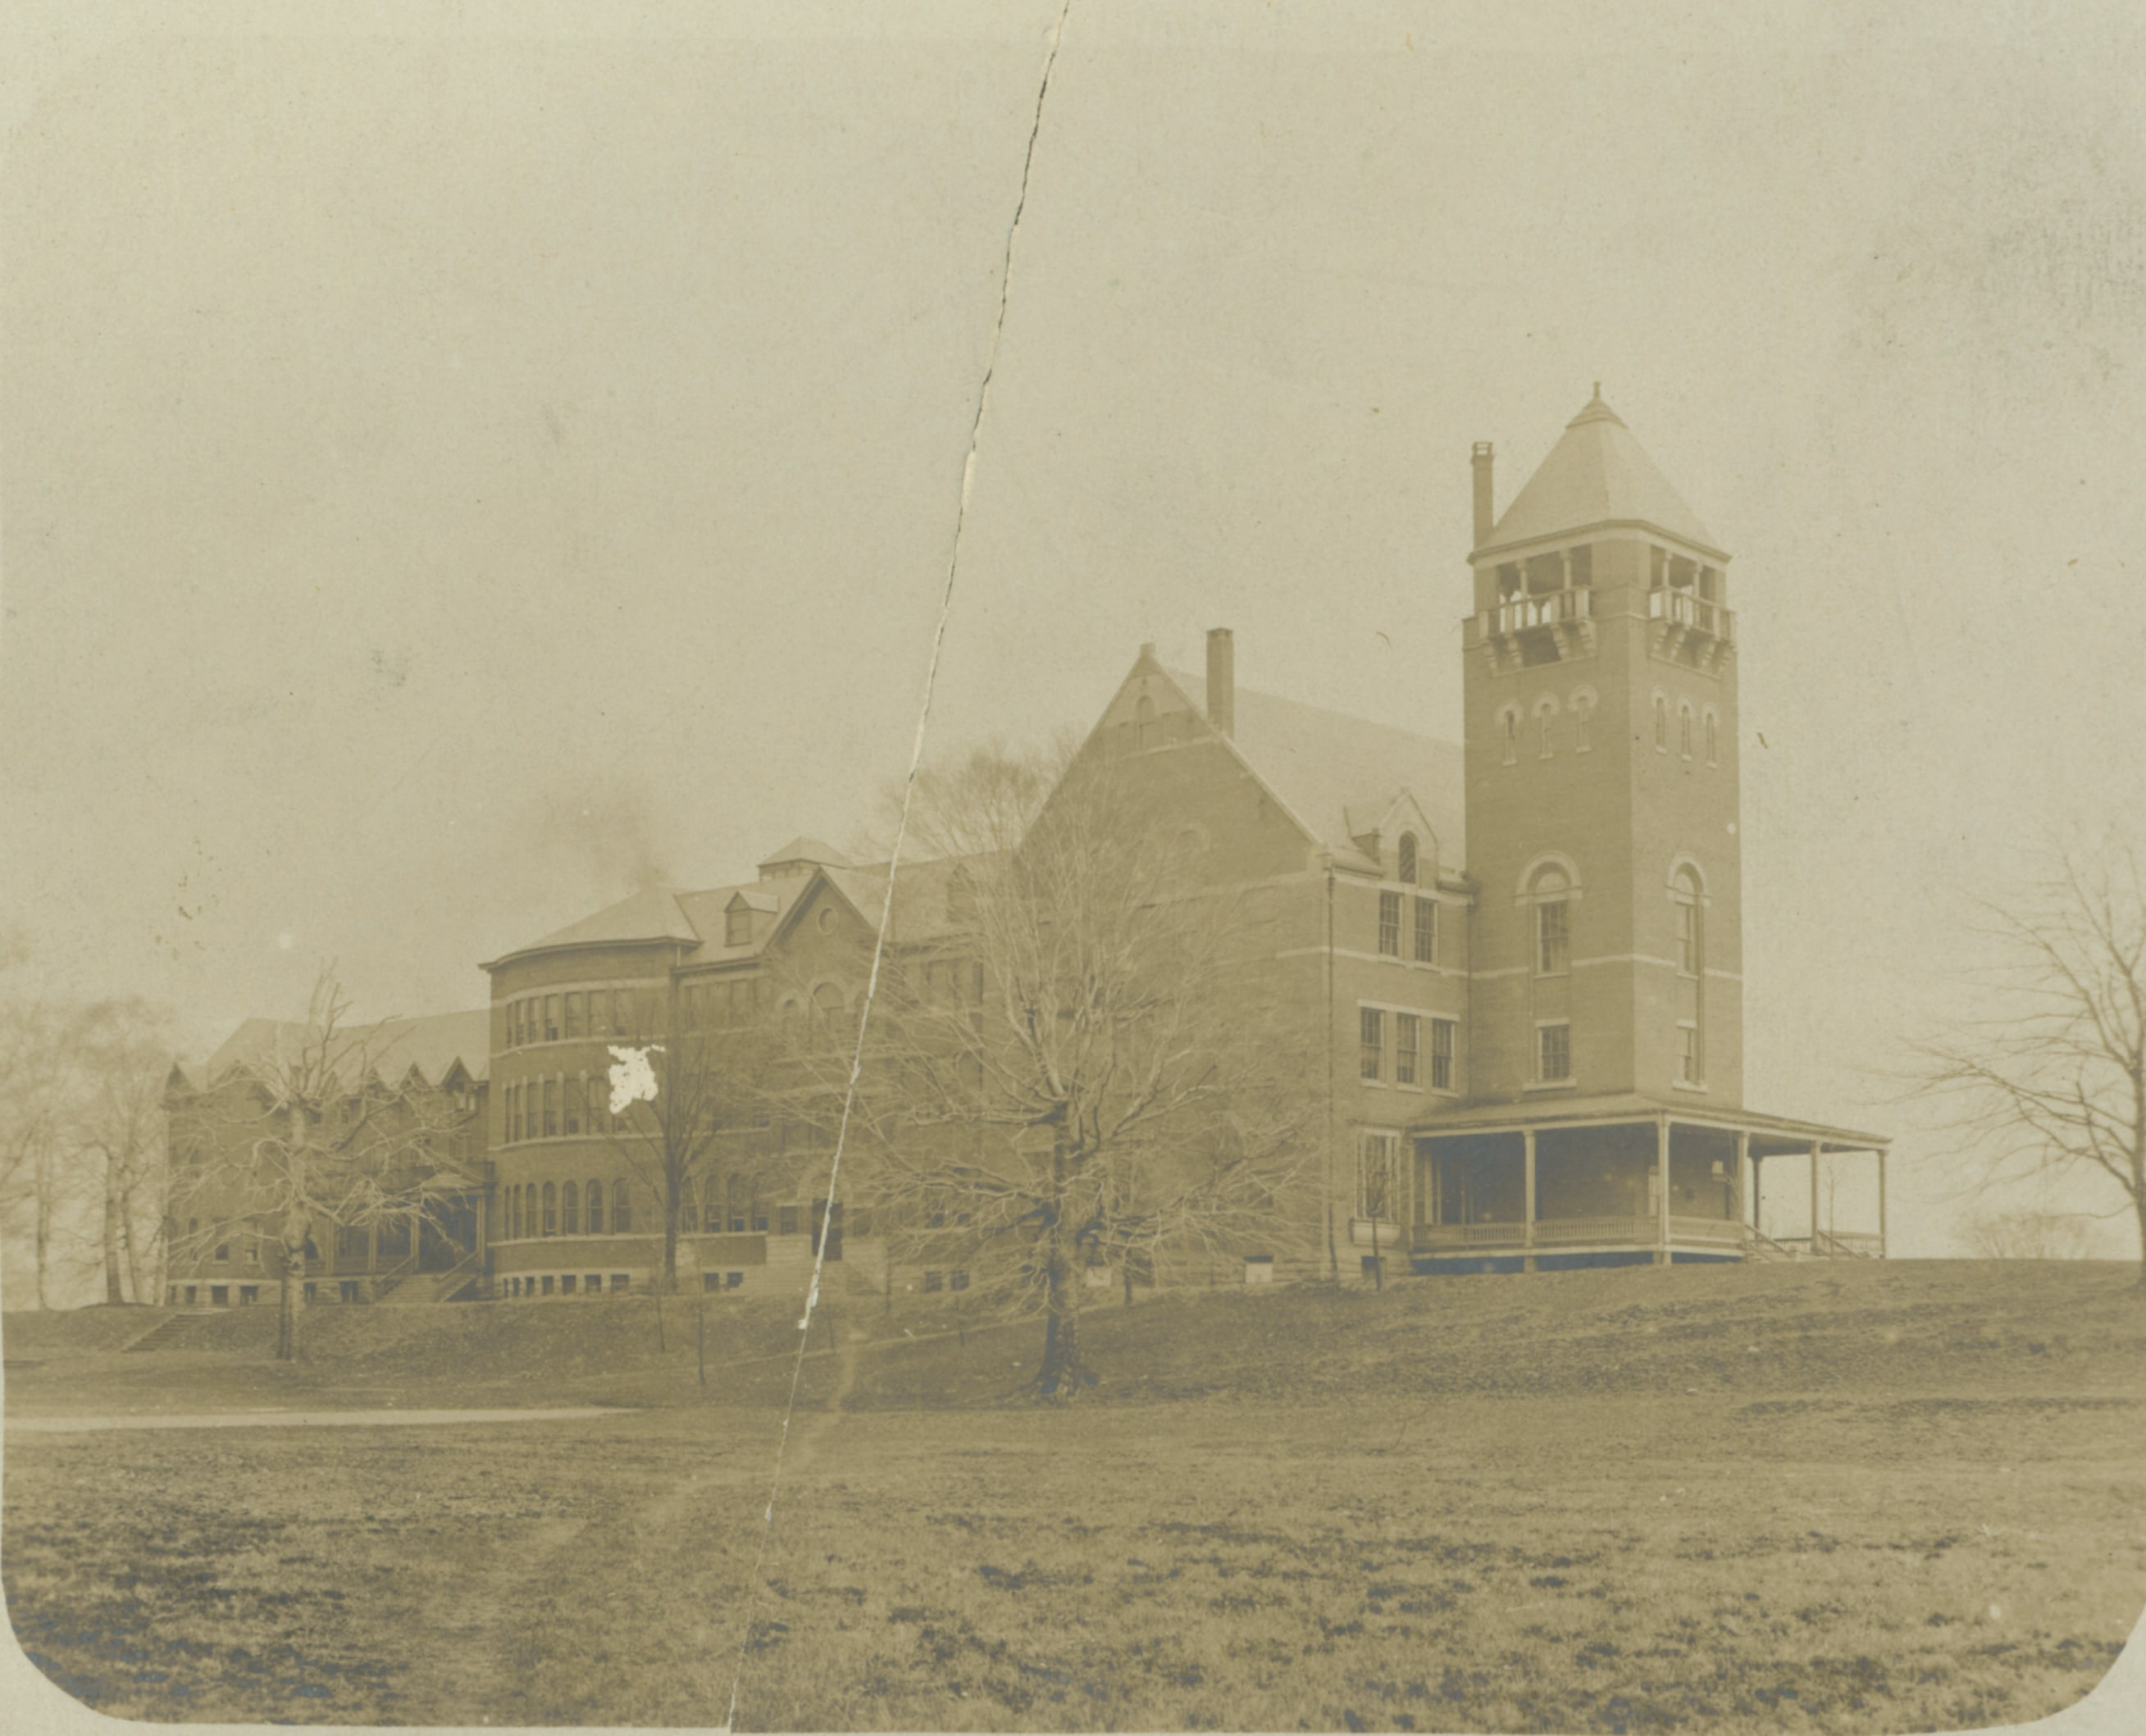 Old Main sometime between 1899 and 1905. Note the bell tower in front of the 1870 section.